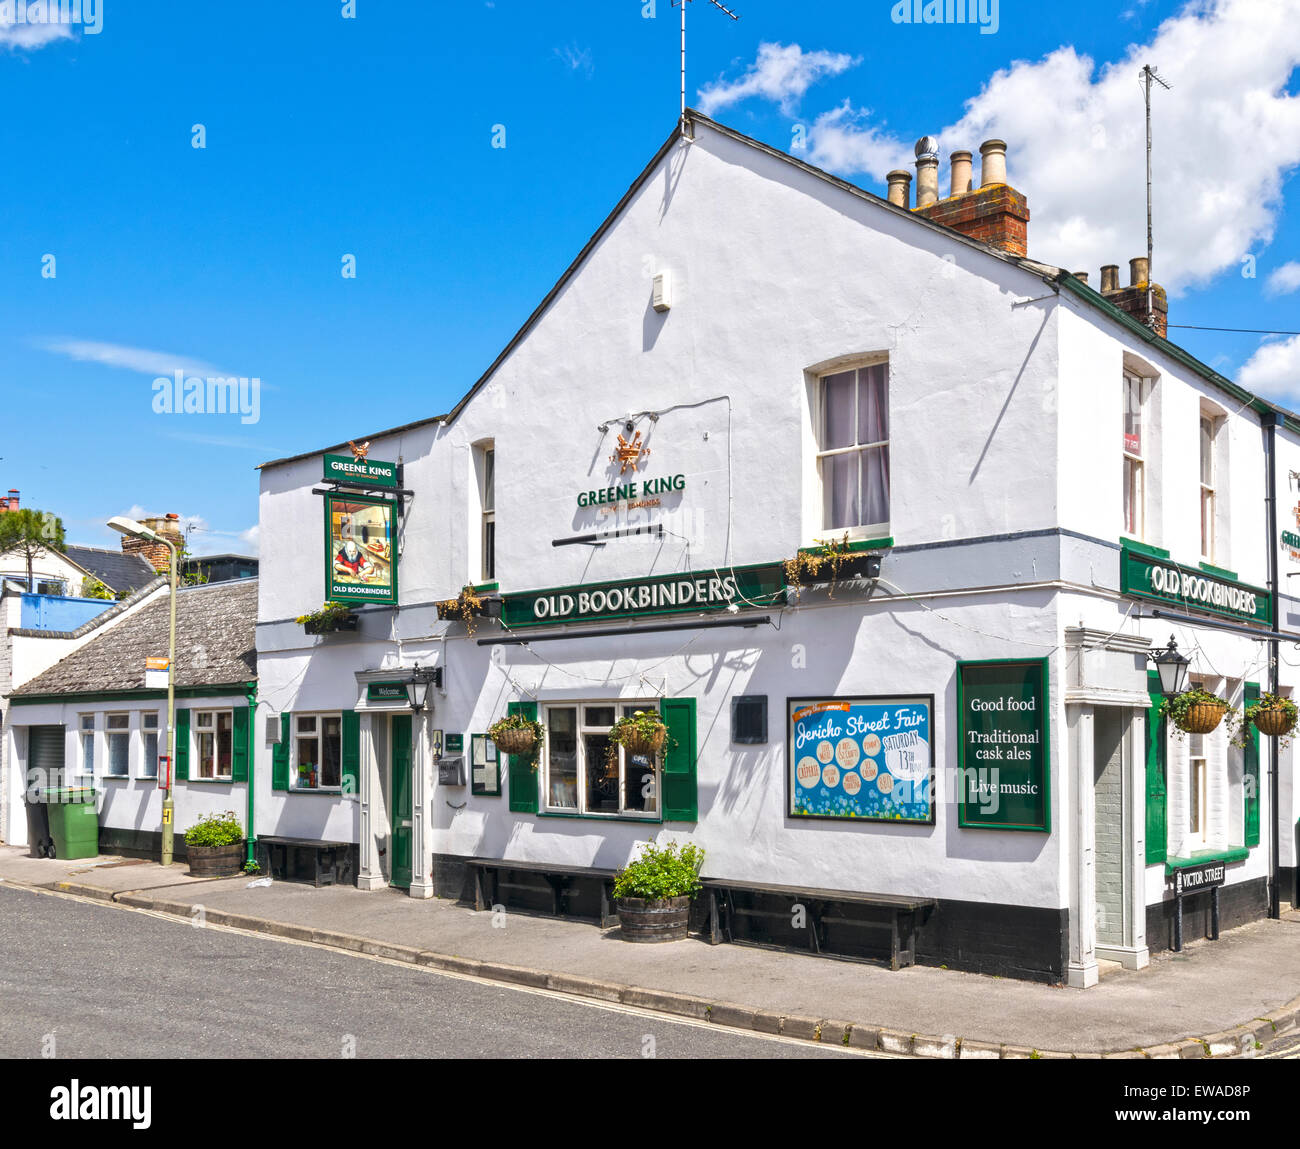 OXFORD CITY JERICHO THE OLD BOOKBINDERS INN - Stock Image